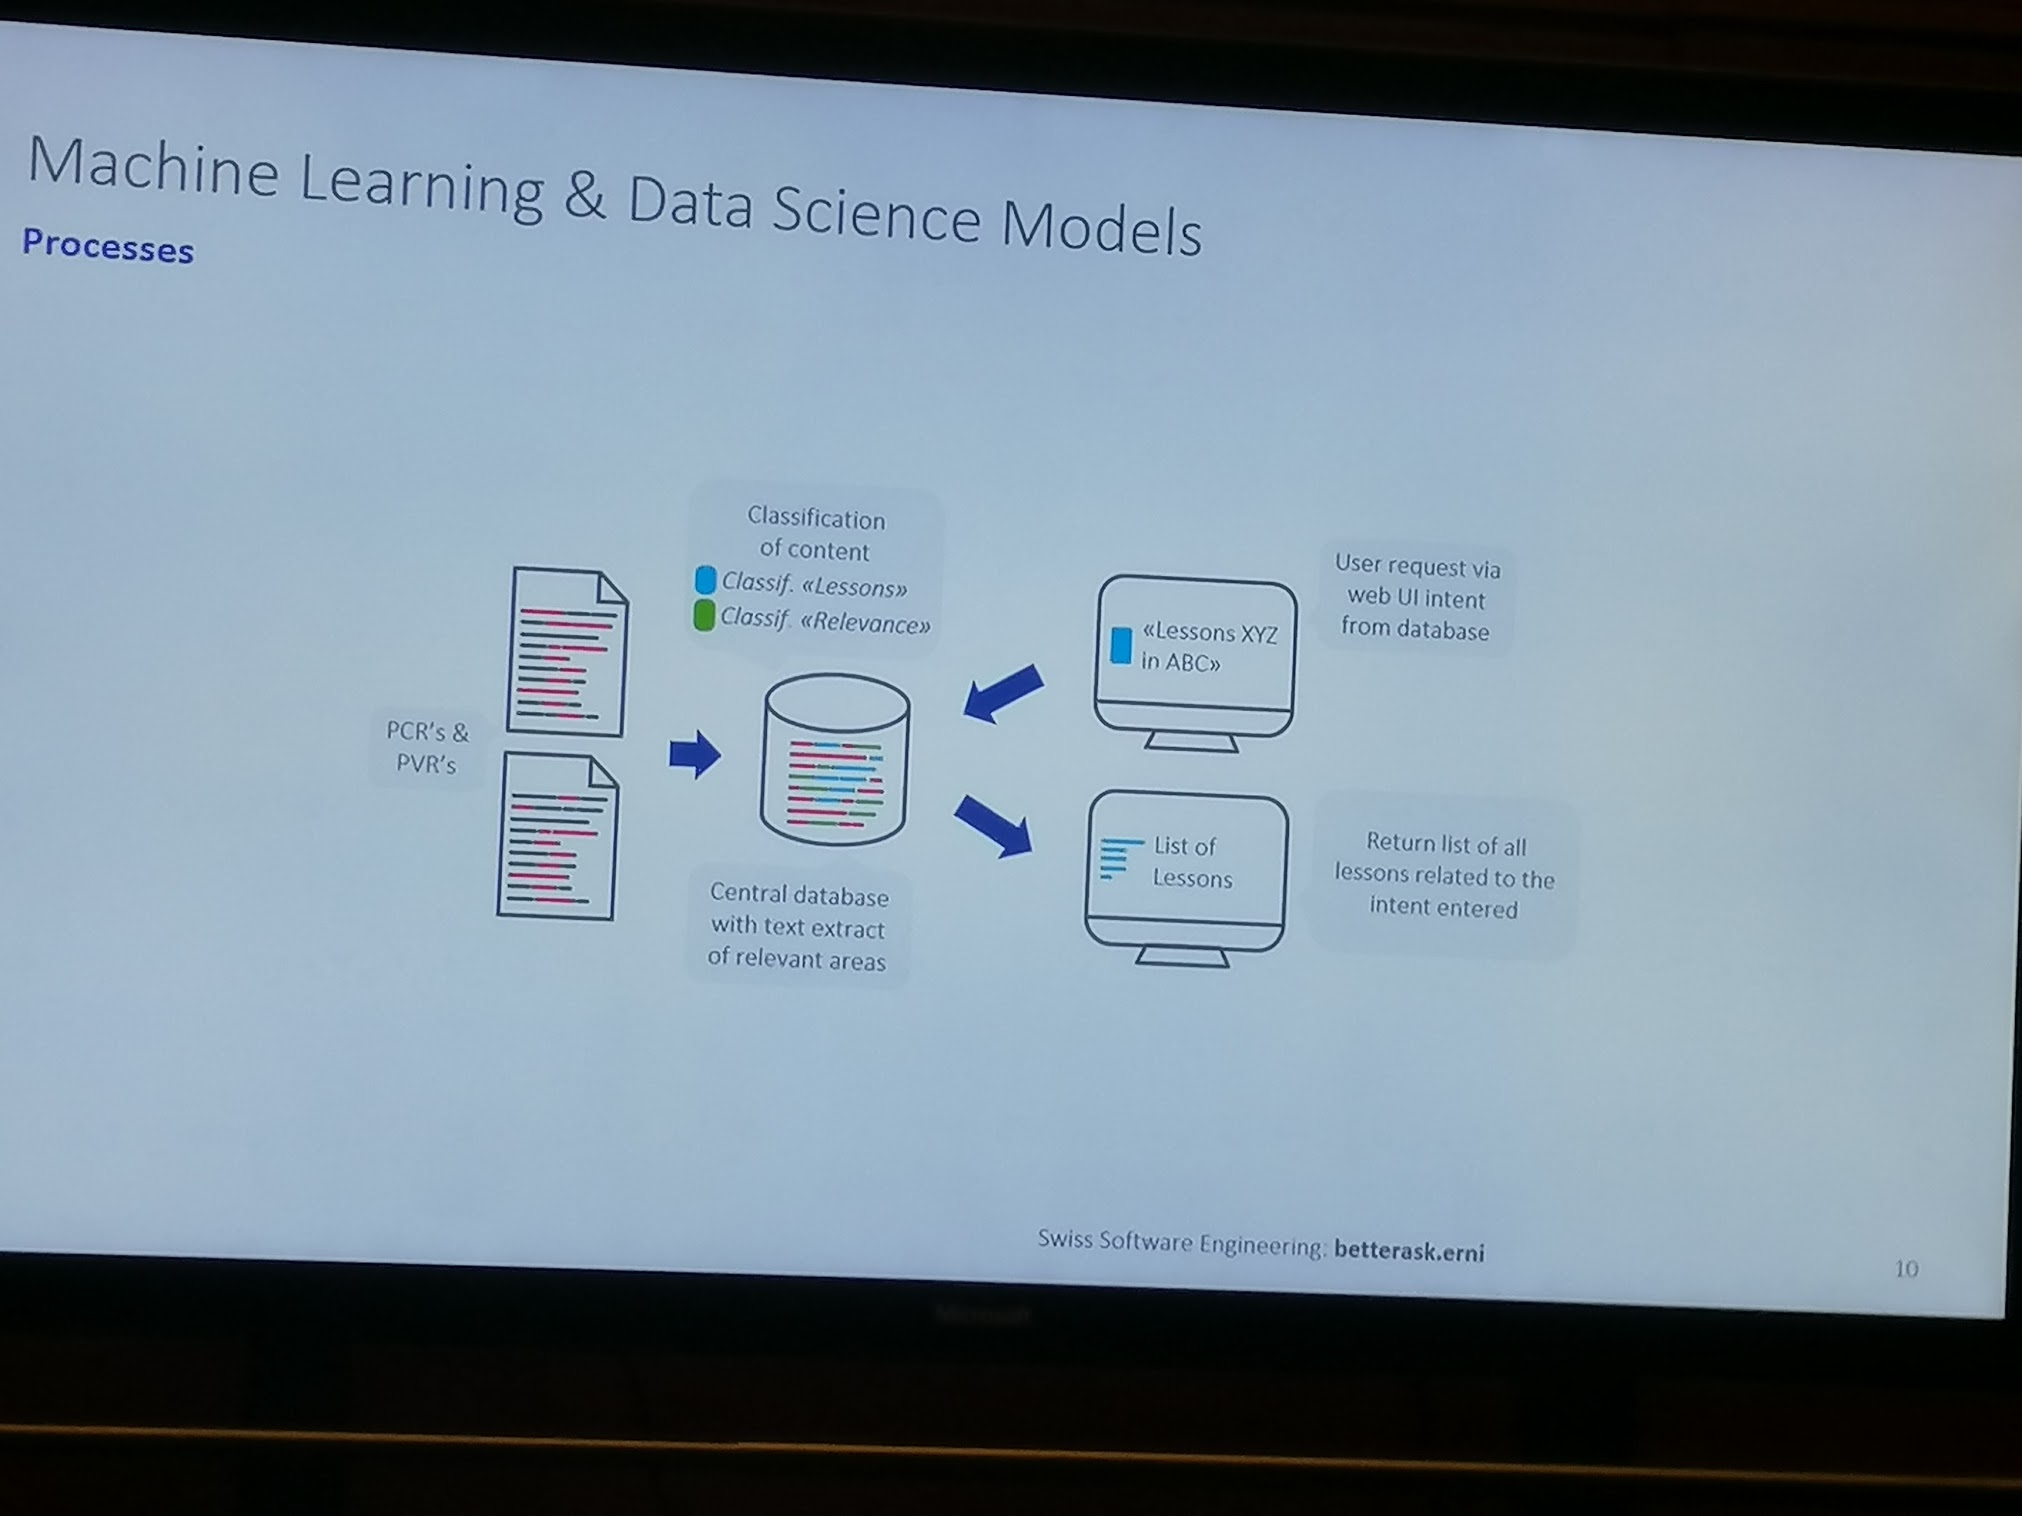 10:14 a.m. - ERNI showing their Machine Learning and Data Science Models.